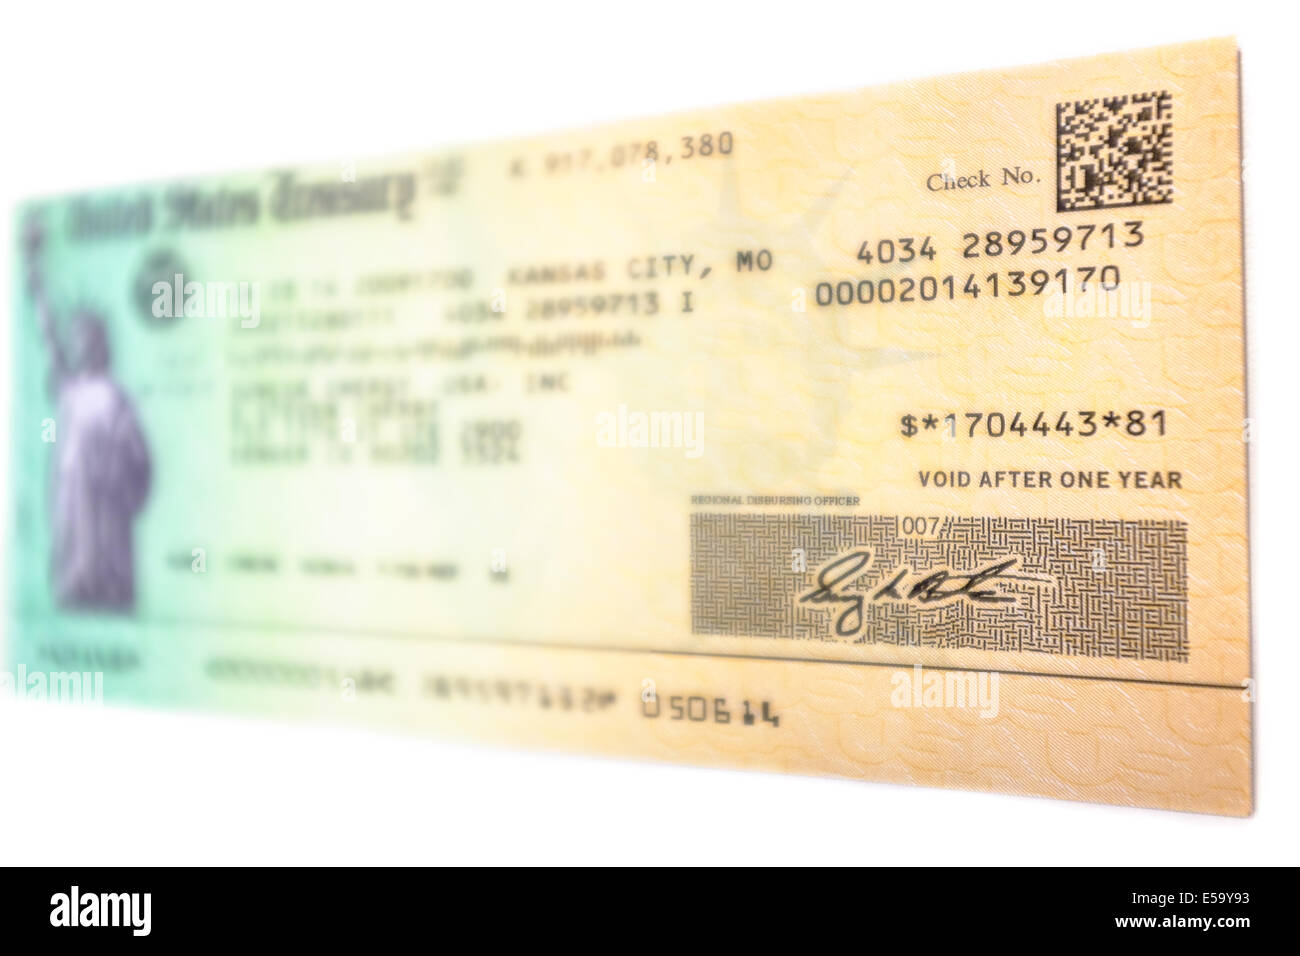 A Tax Refund Check In The Amount Of 1 704 443 81 Issued By The Stock Photo